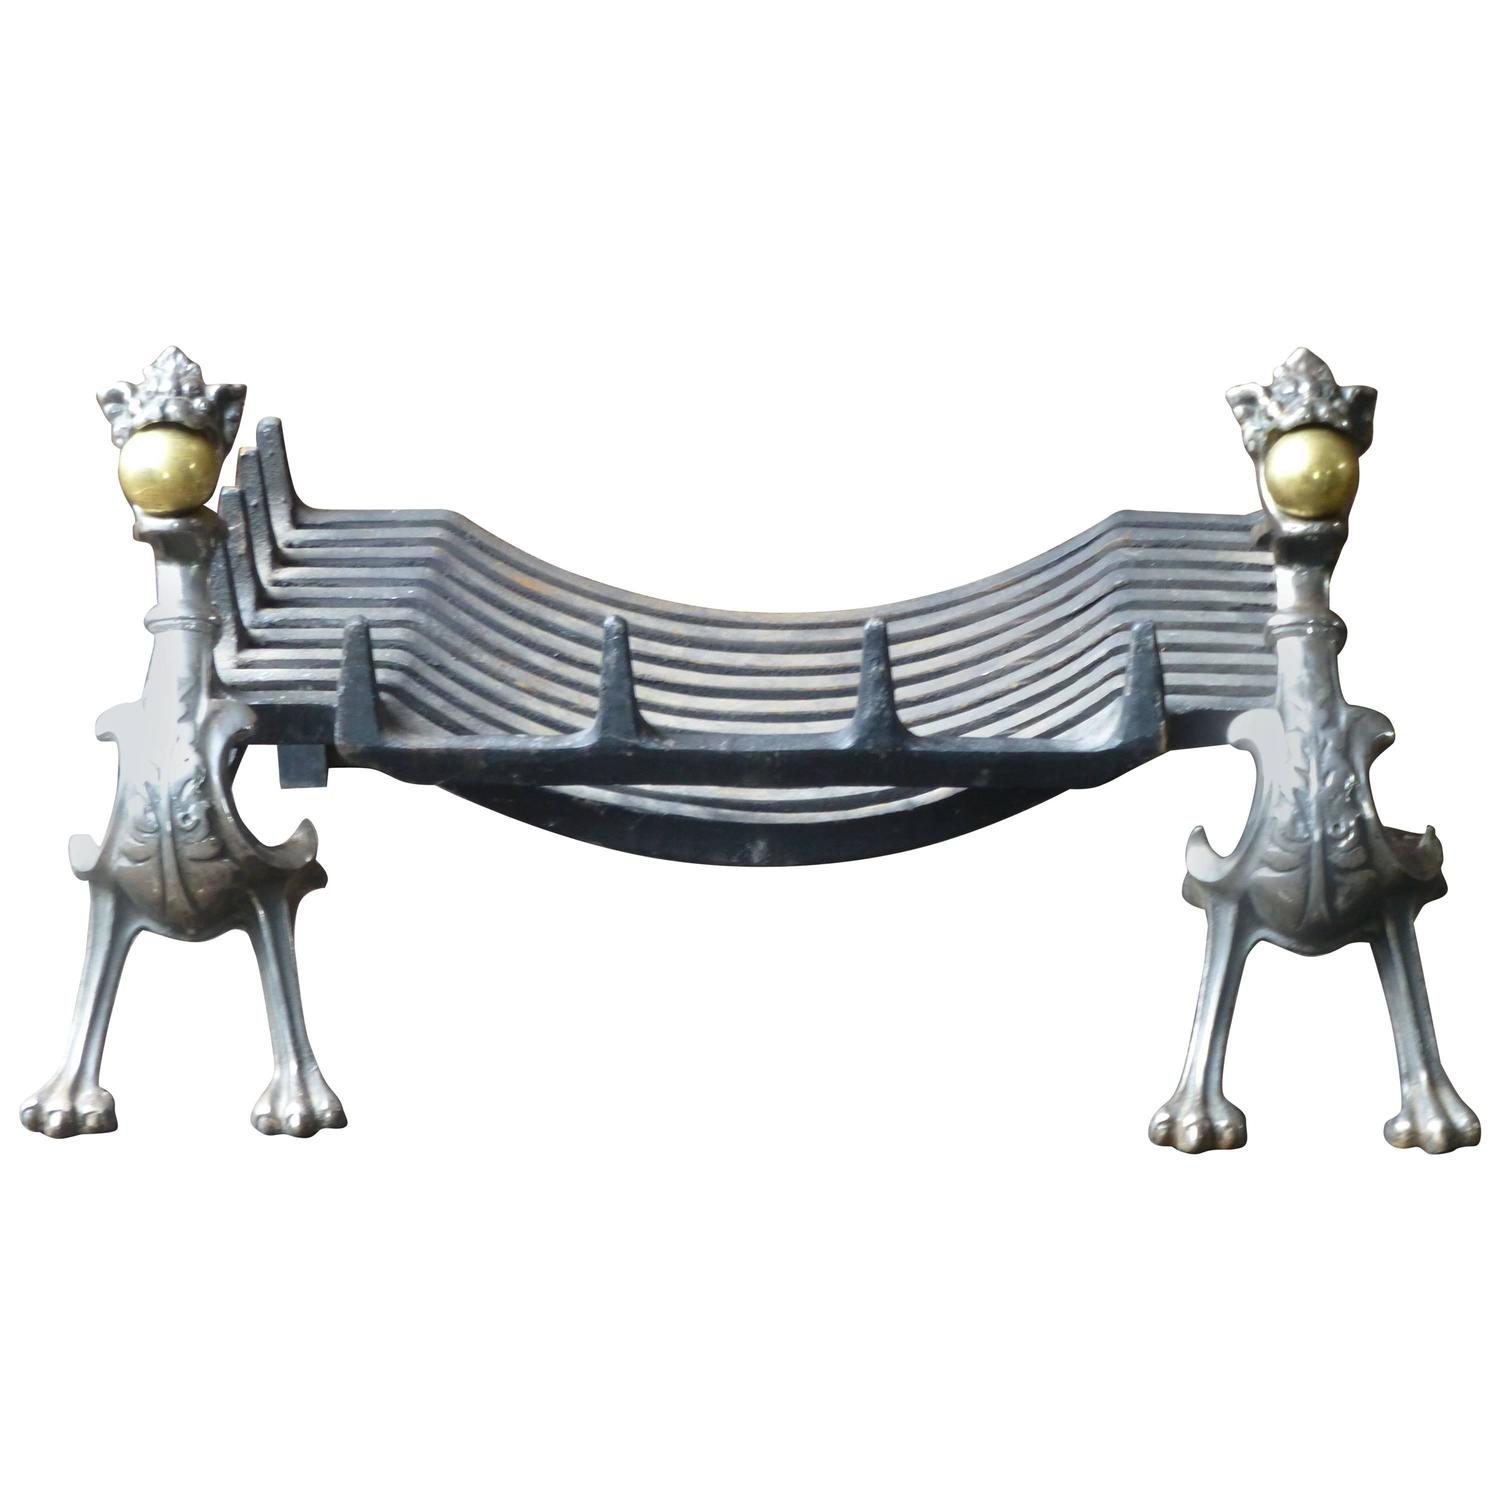 impressive dragon fireplace grate fire grate at 1stdibs